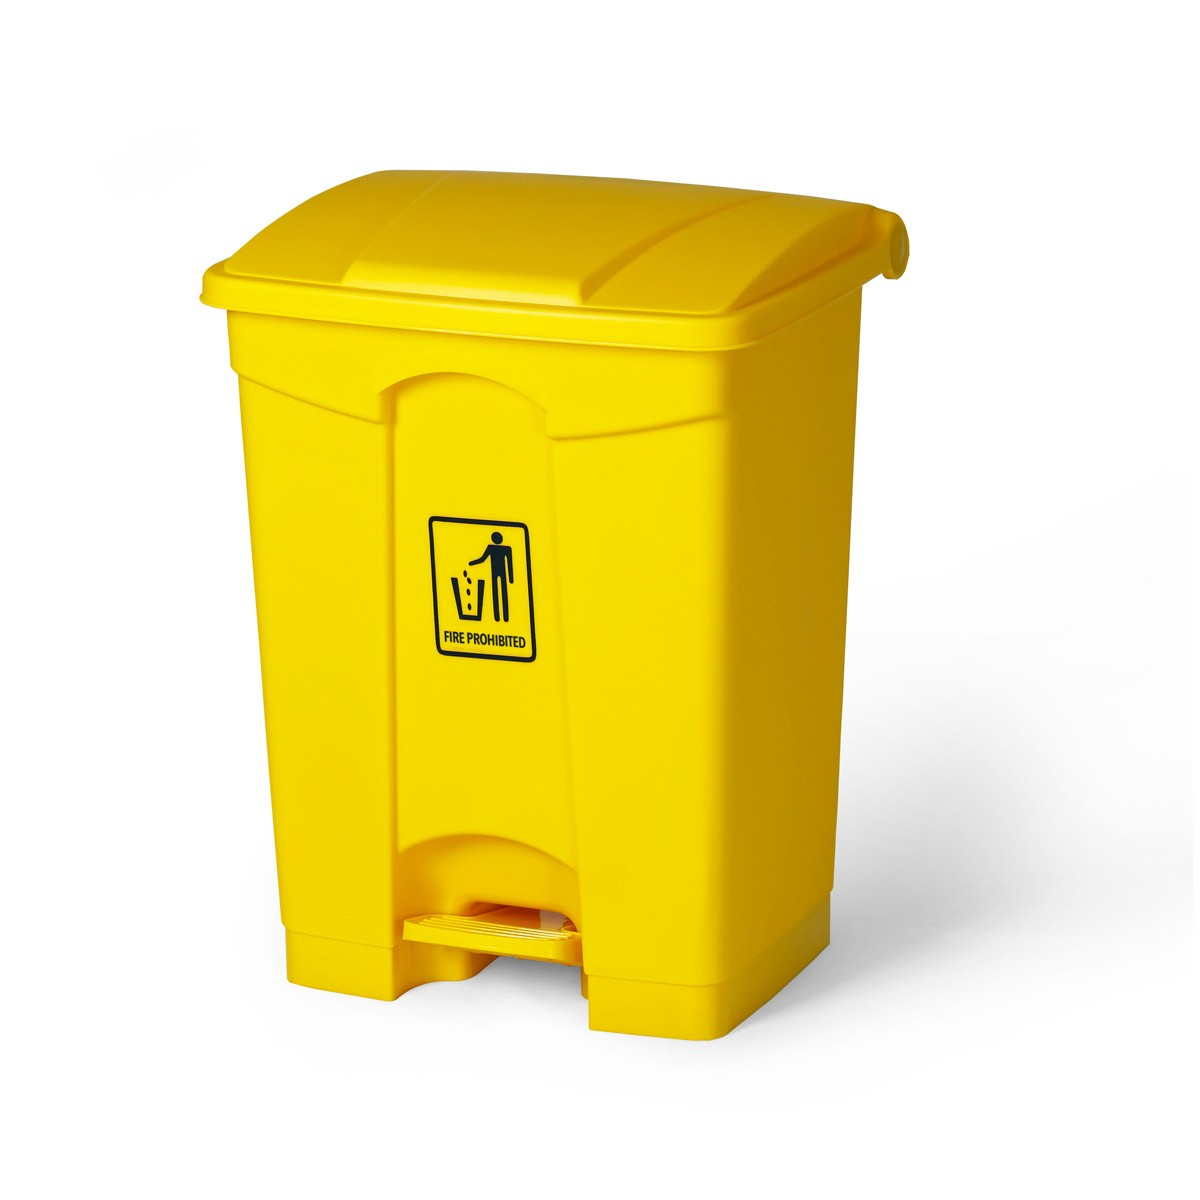 Wastecan 68l With Lid And Foot Pedal Yellow